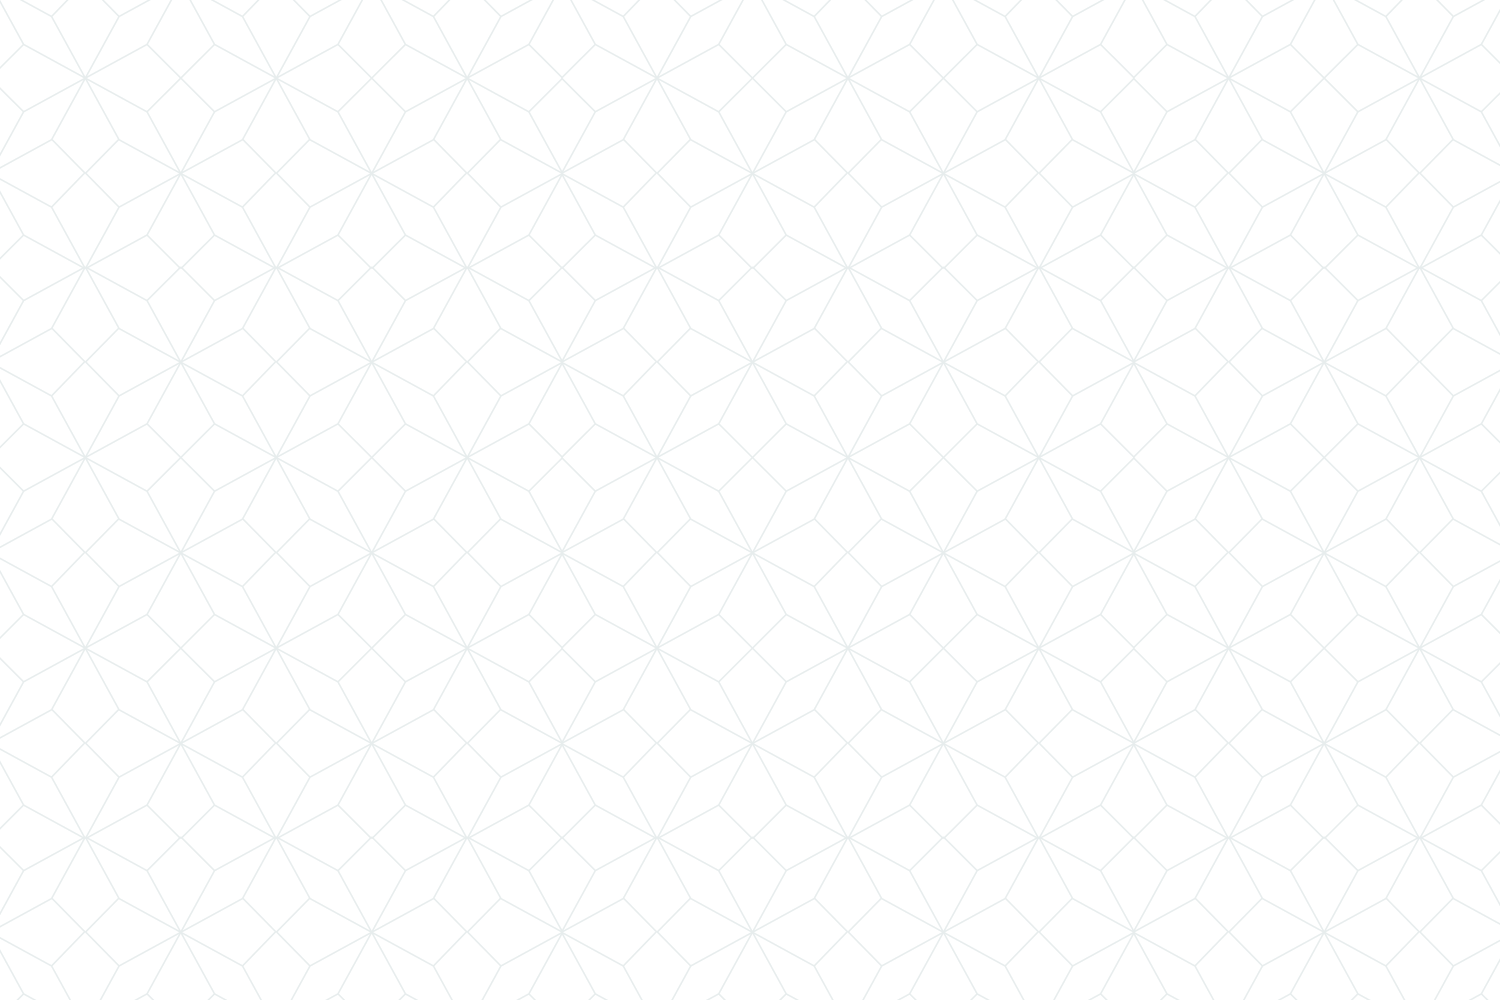 White background with gray origami pattern